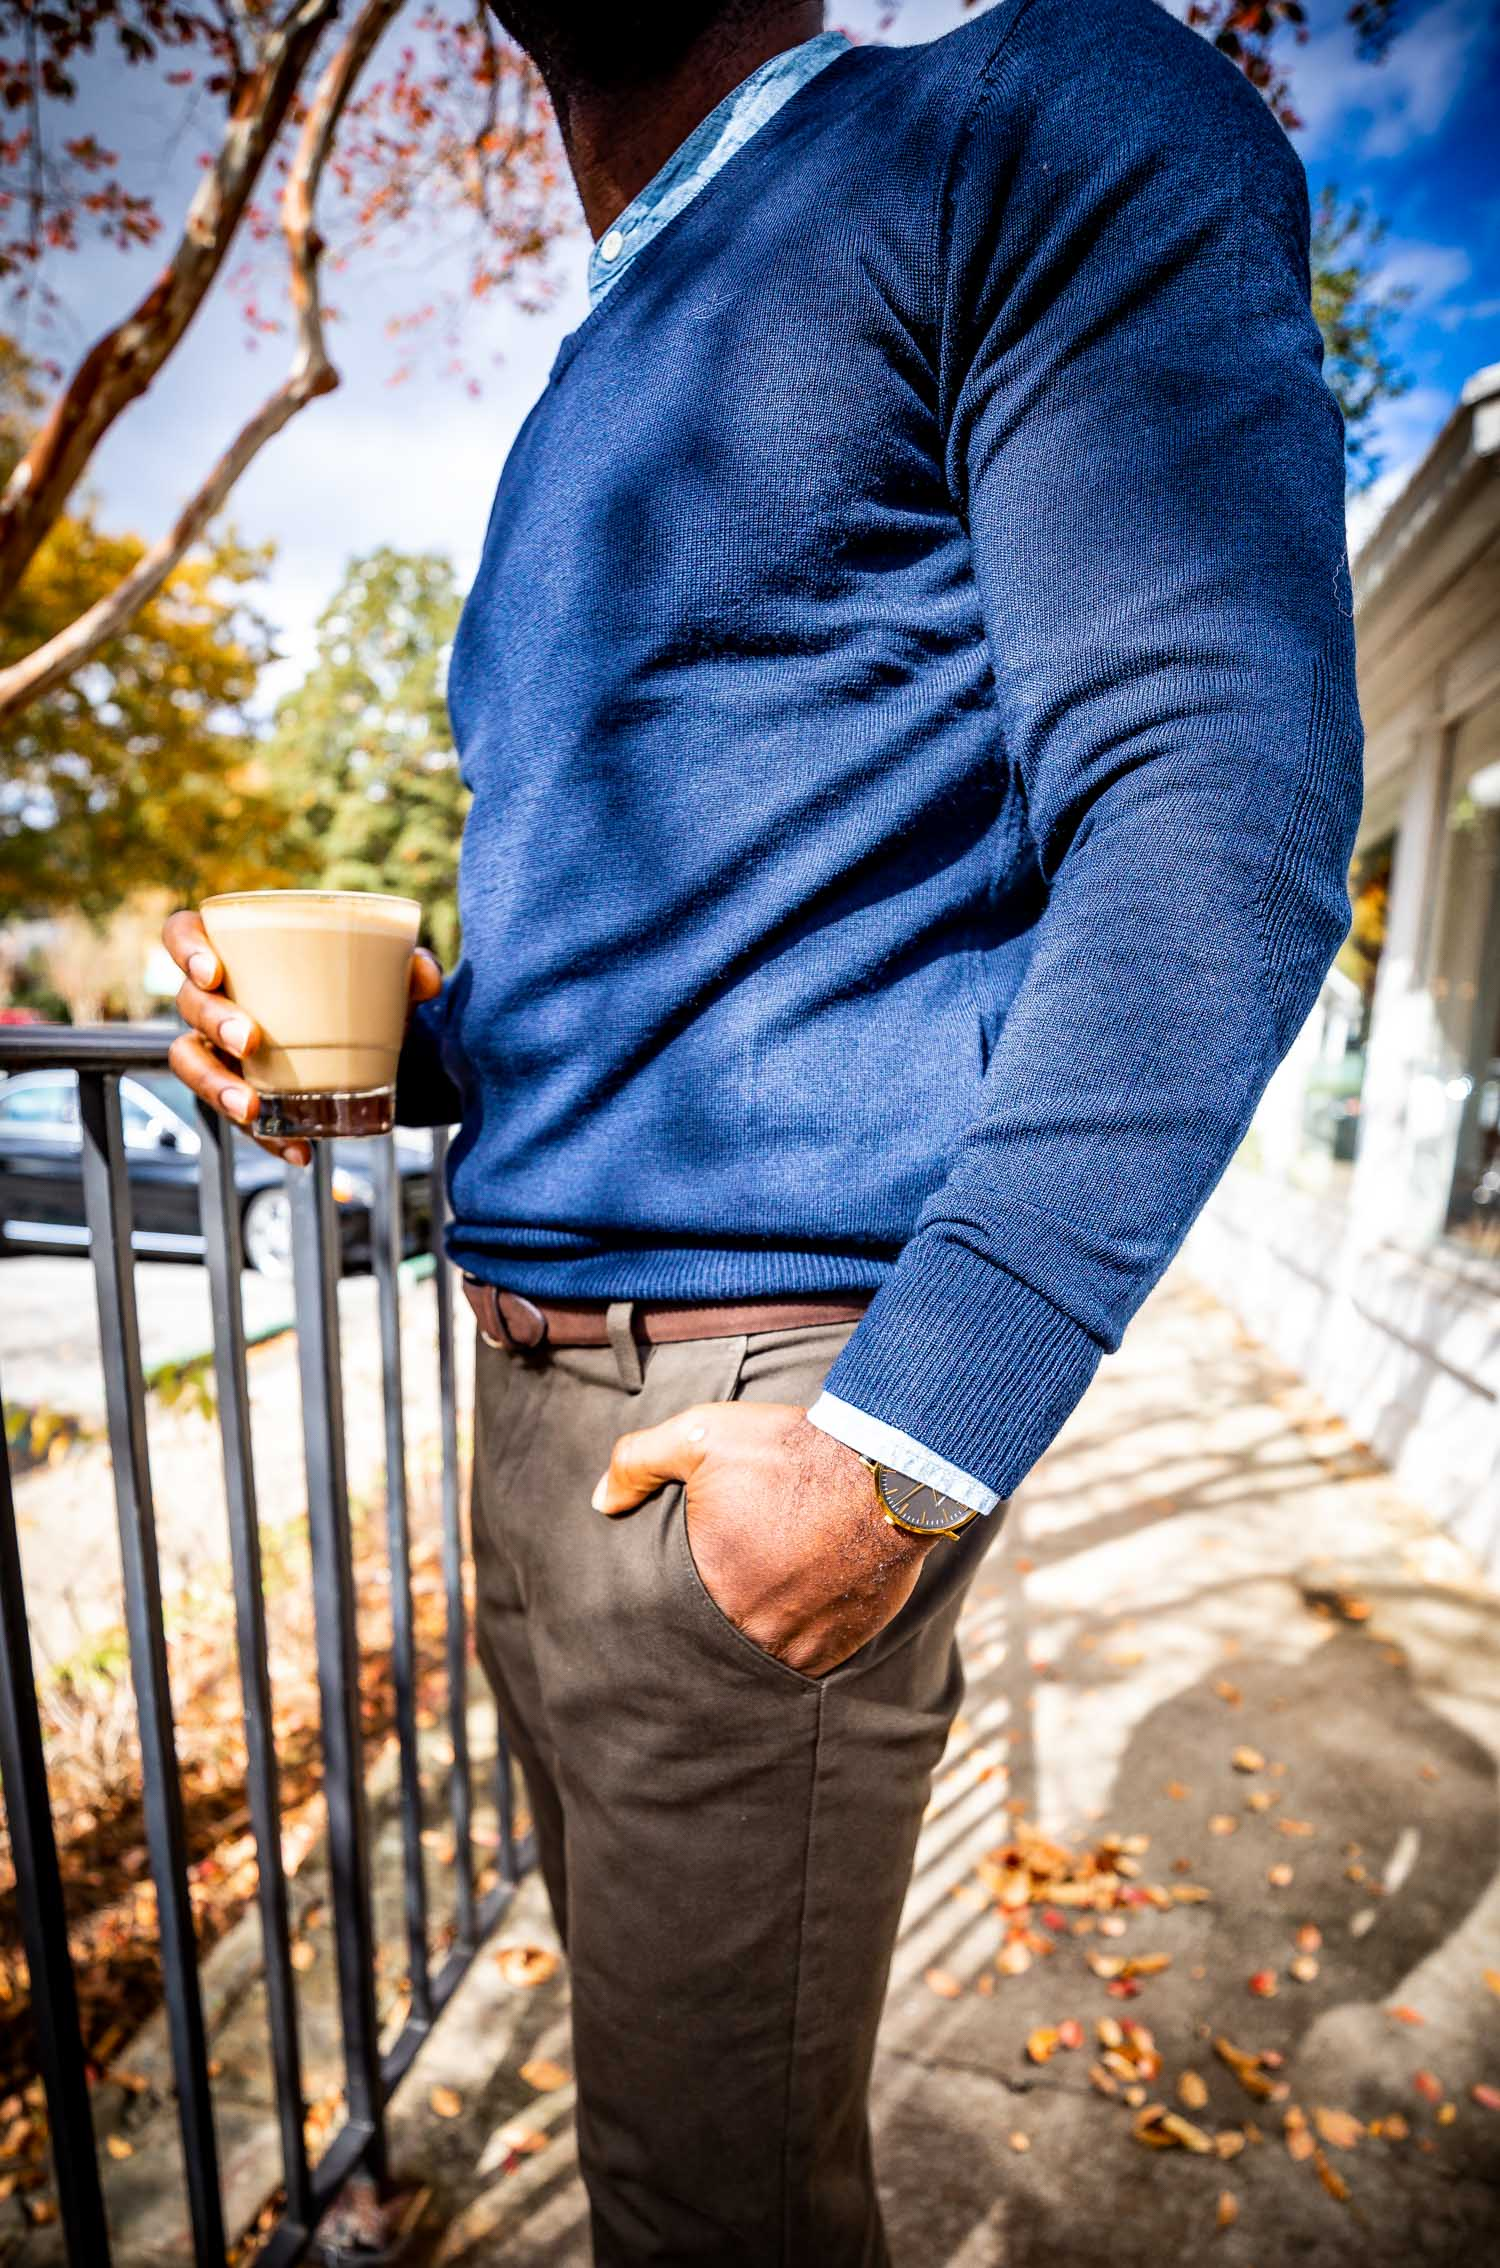 Atlanta lifestyle blogger Monica Awe-Etuk and husband in the new Dockers smart pants, navy merino wool v-neck sweater and butterscotch loafers